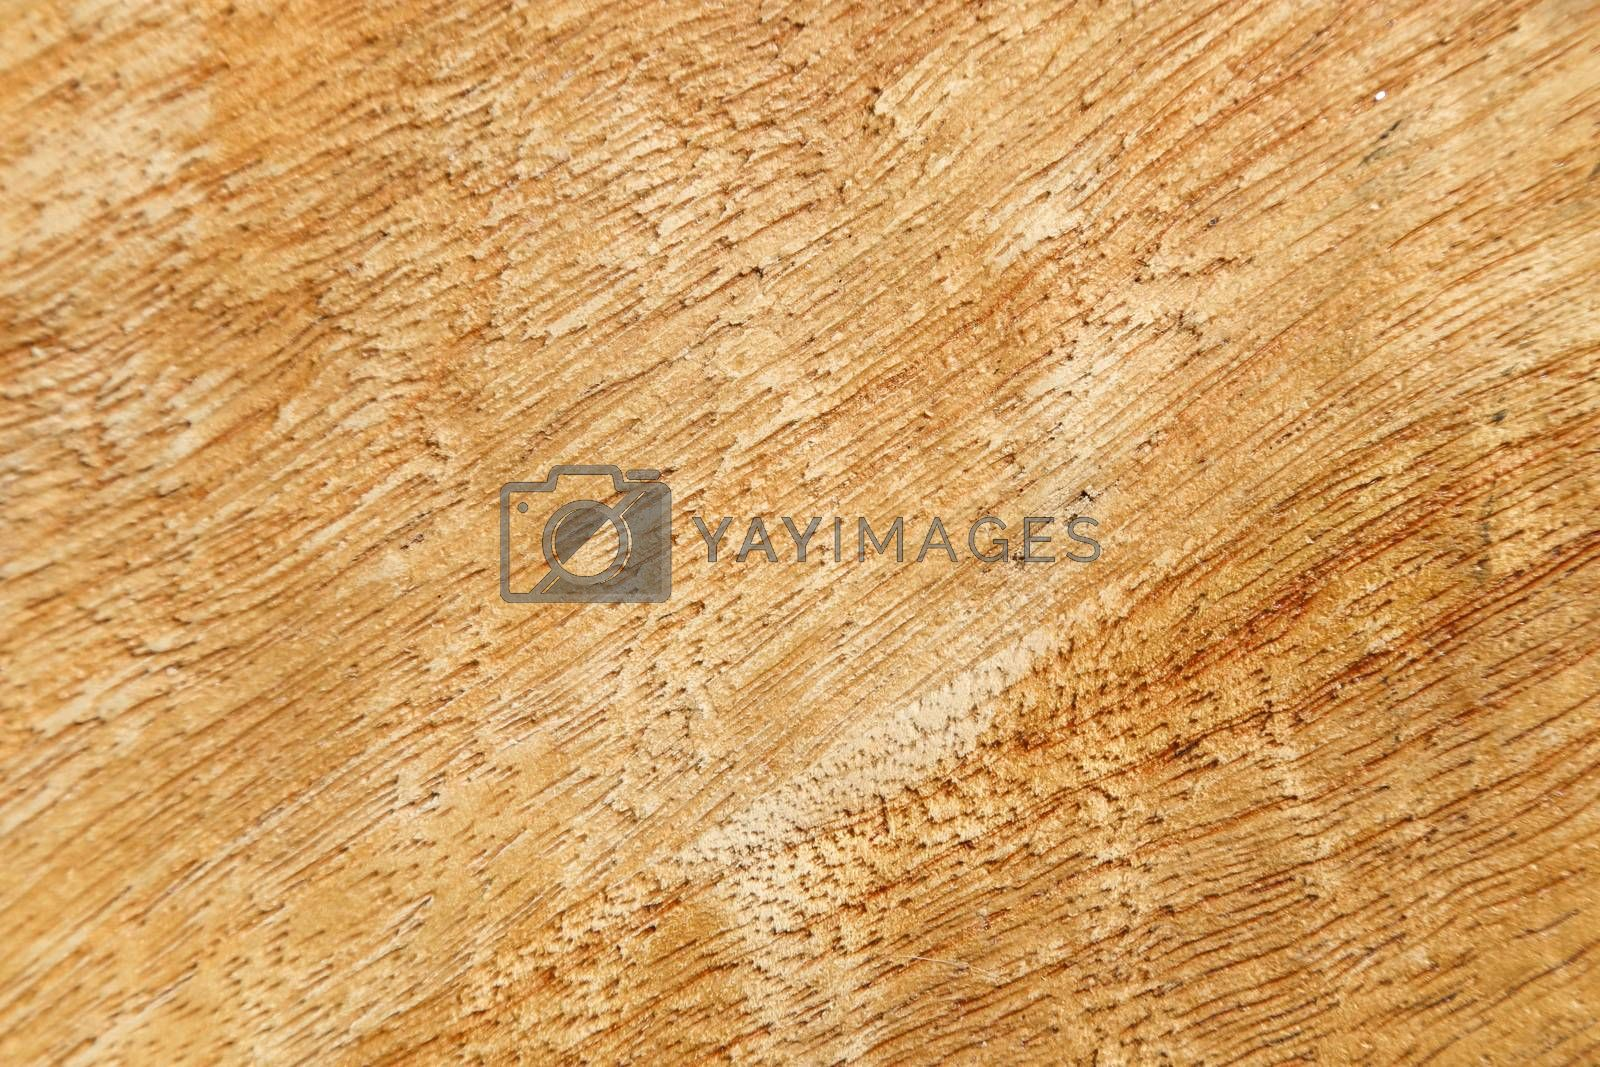 Royalty free image of Wood texture with knots and detail on the wood grain by inspireme